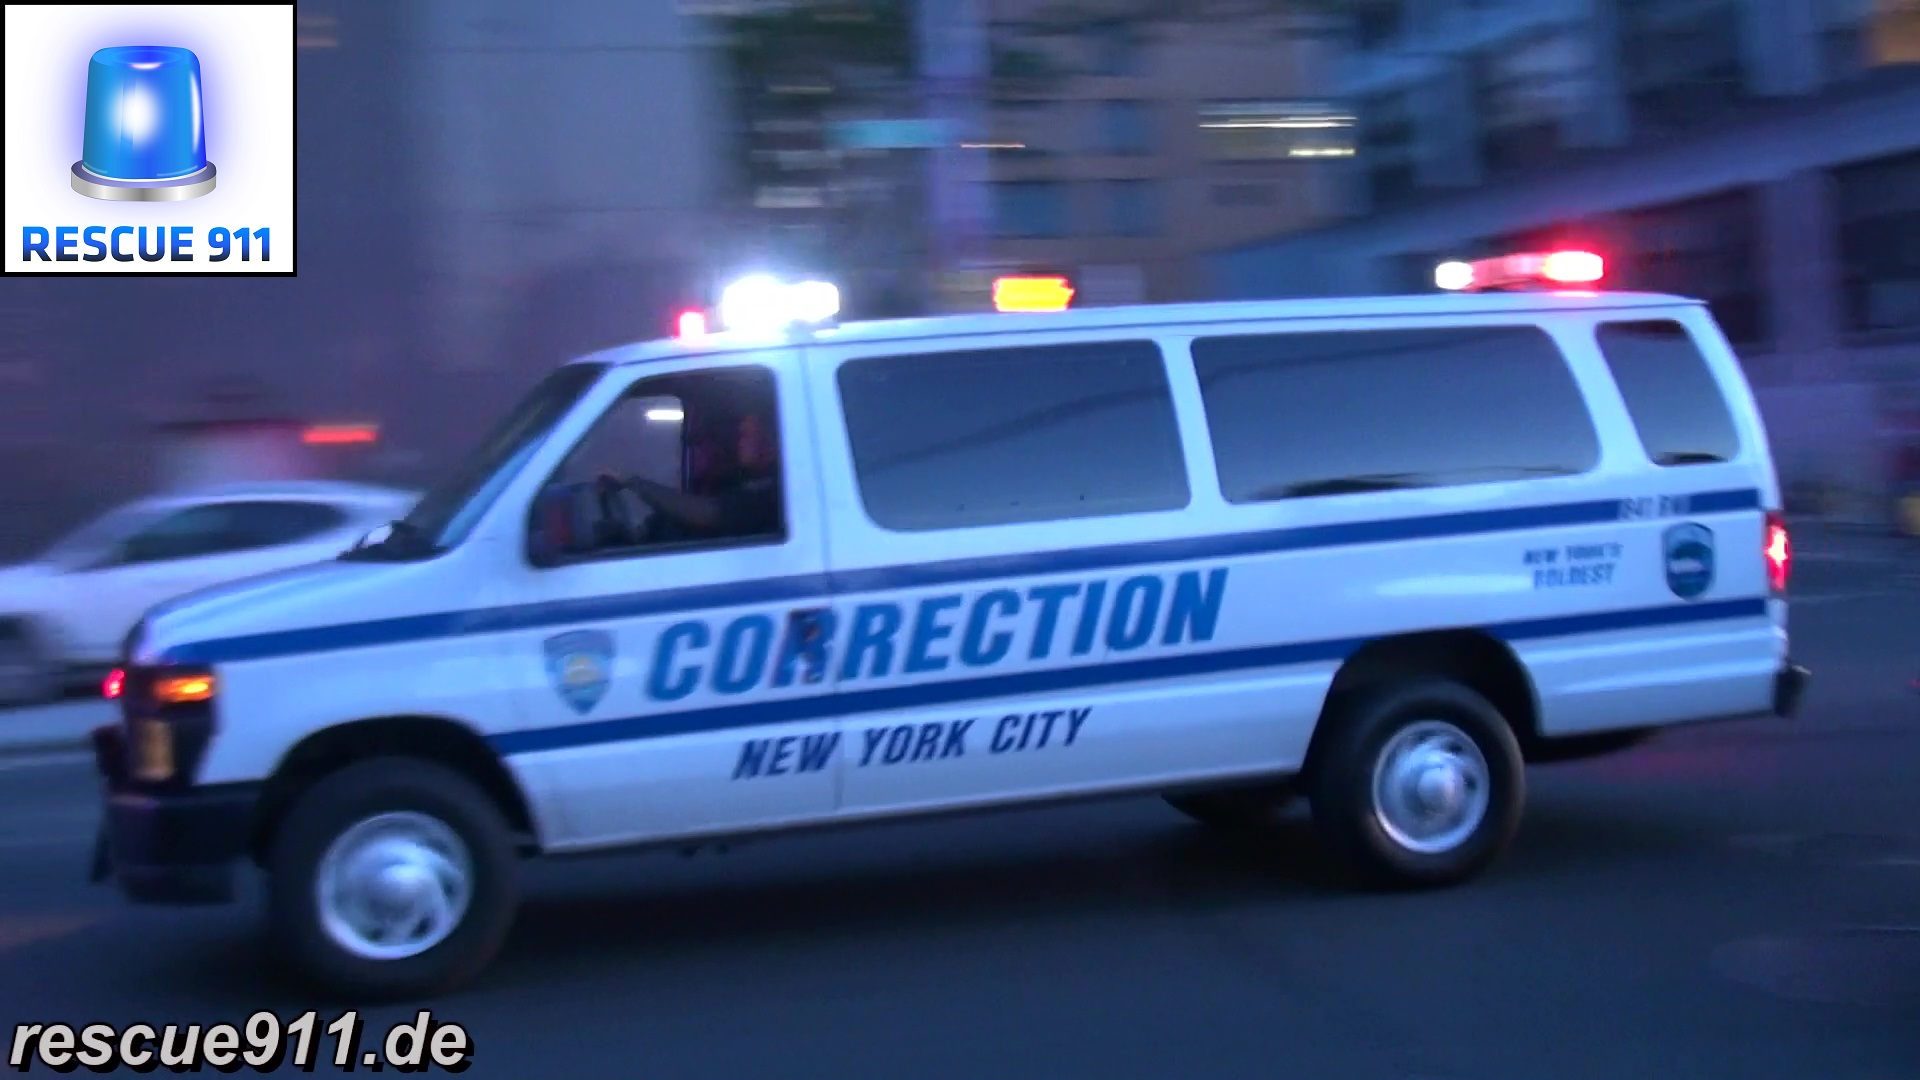 NYC Correction (collection) (stream)